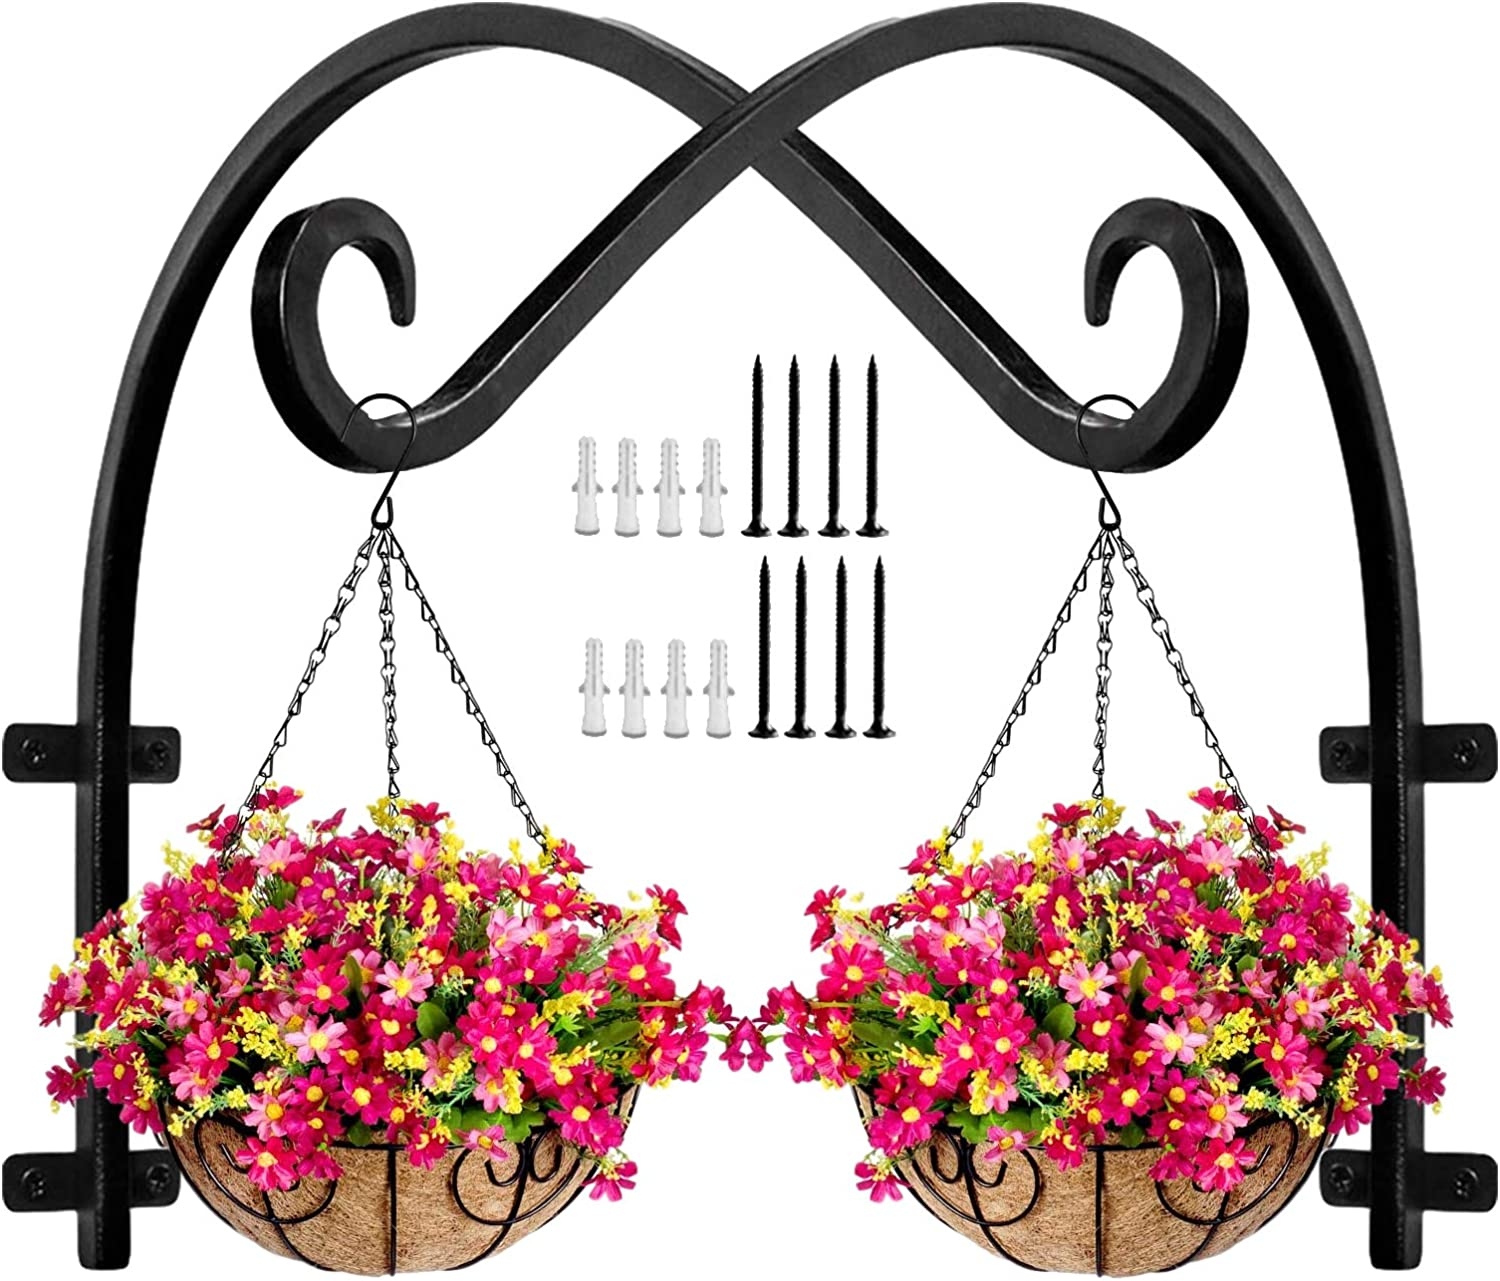 SZLJDKG 2 PCS Outdoor Plant Hooks Equipped with 4 Fixed Buckles (12 Inches) Hanging Basket Iron Bracket Wall Decorative Hooks for Flower Baskets, Wind Chimes, Bird Feeders, Flower Grooves